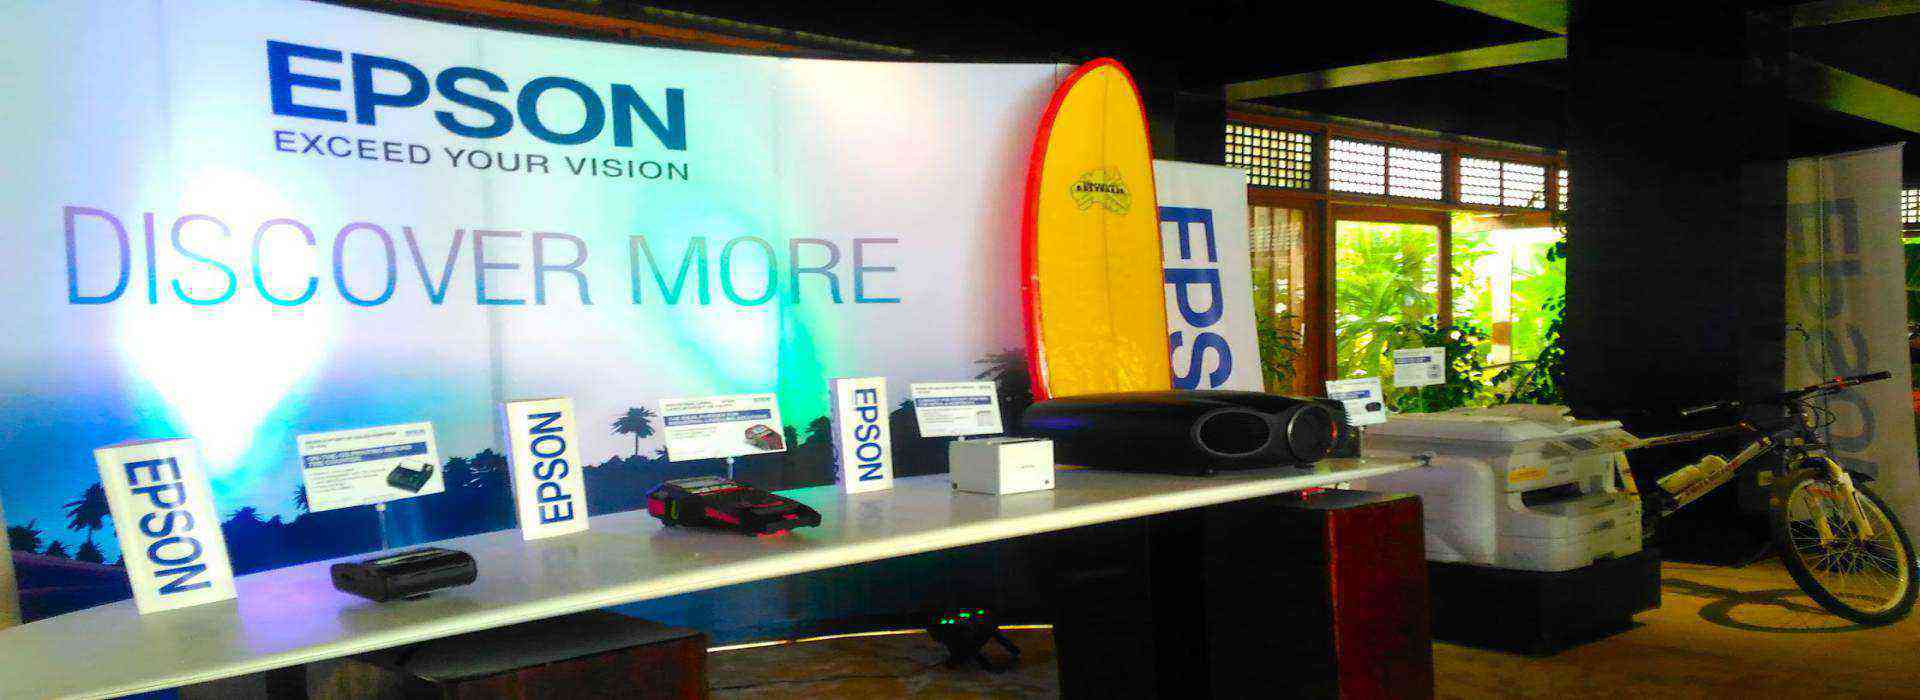 Epson Philippines Customer Service Number, Address, Email Support